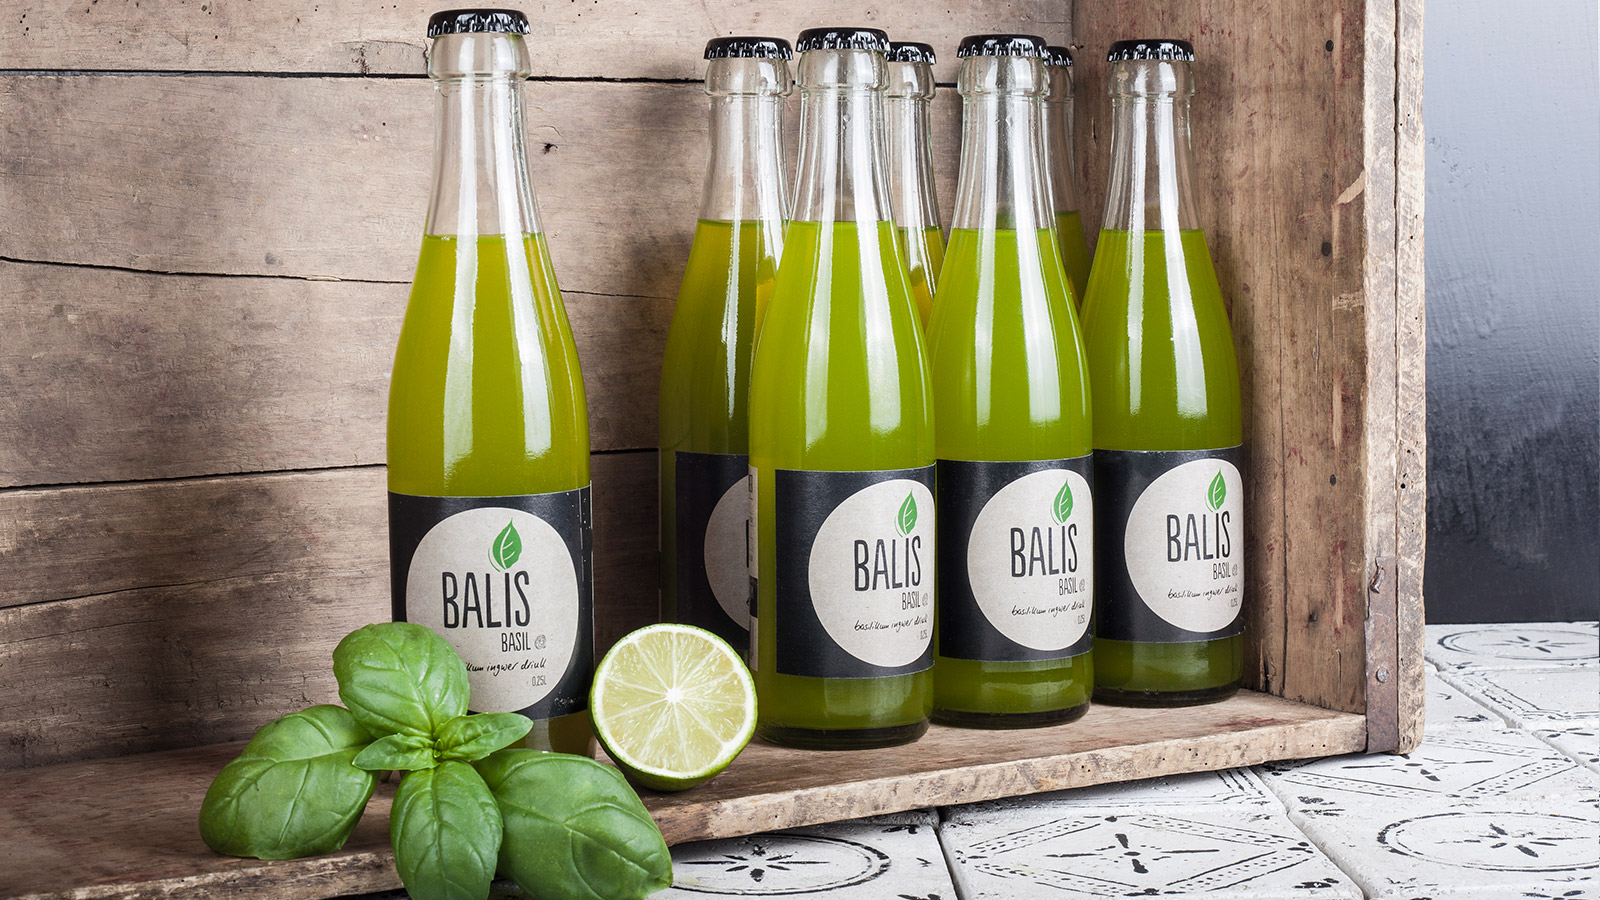 balis drinks ueber balis header